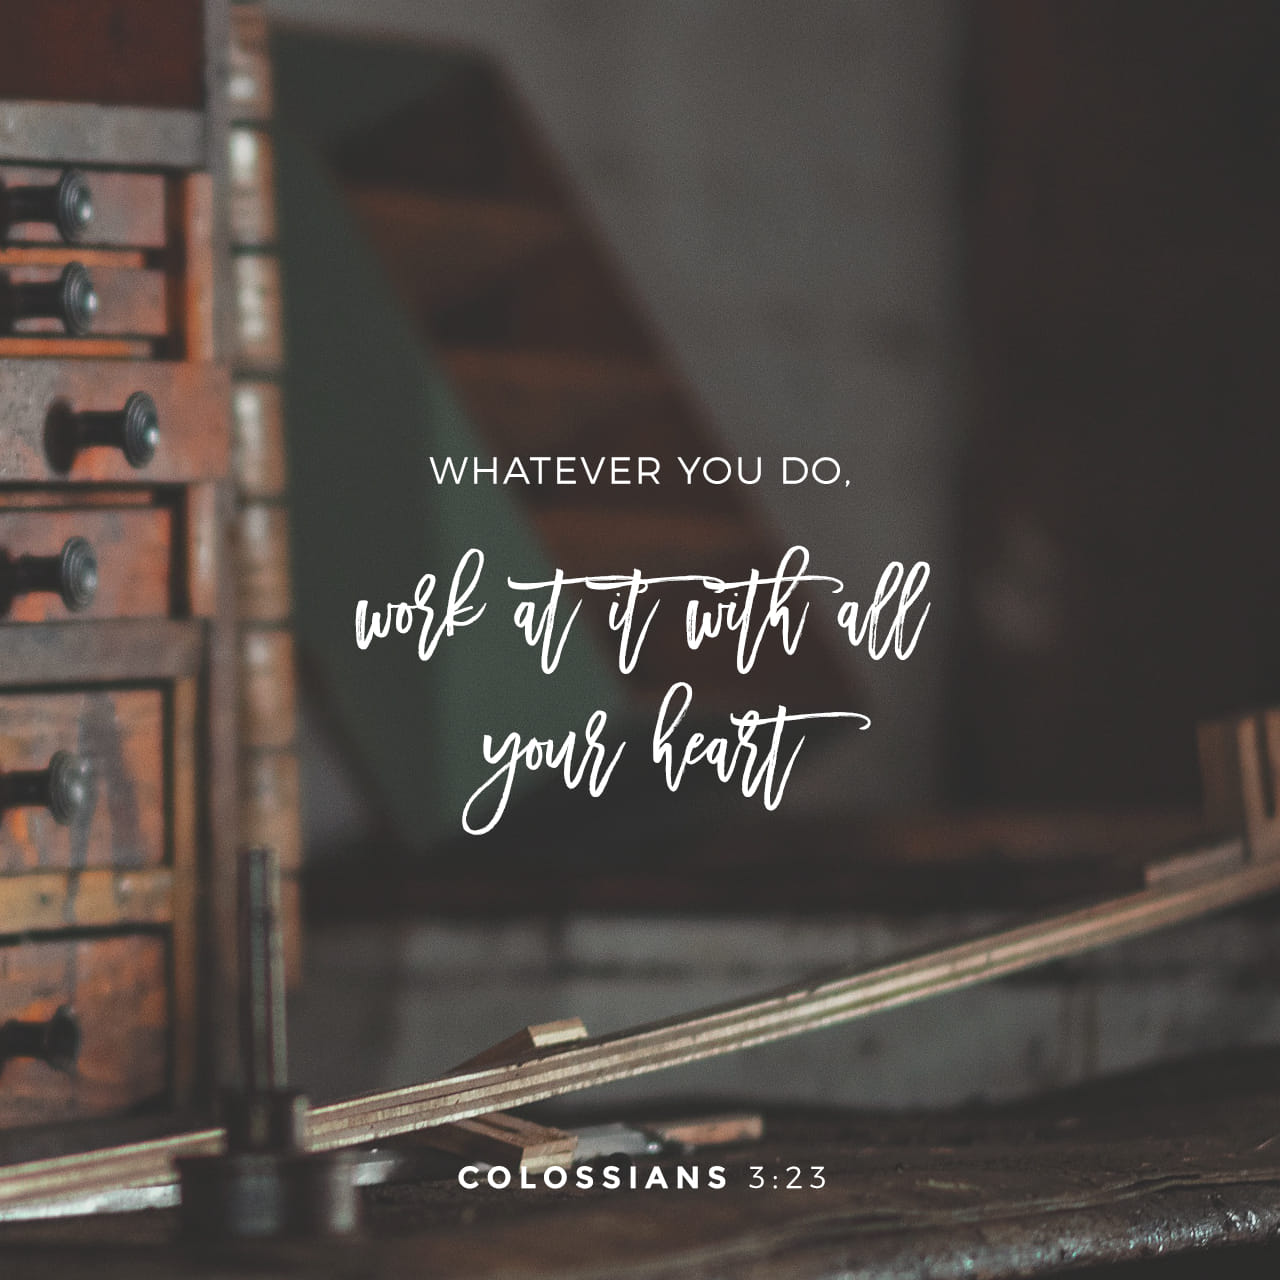 Colossians 3:23-24 And whatsoever ye do, do it heartily, as to the Lord, and not unto men; Knowing that of the Lord ye shall receive the reward of the inheritance: for ye serve the Lord Christ. | King James Version (KJV)